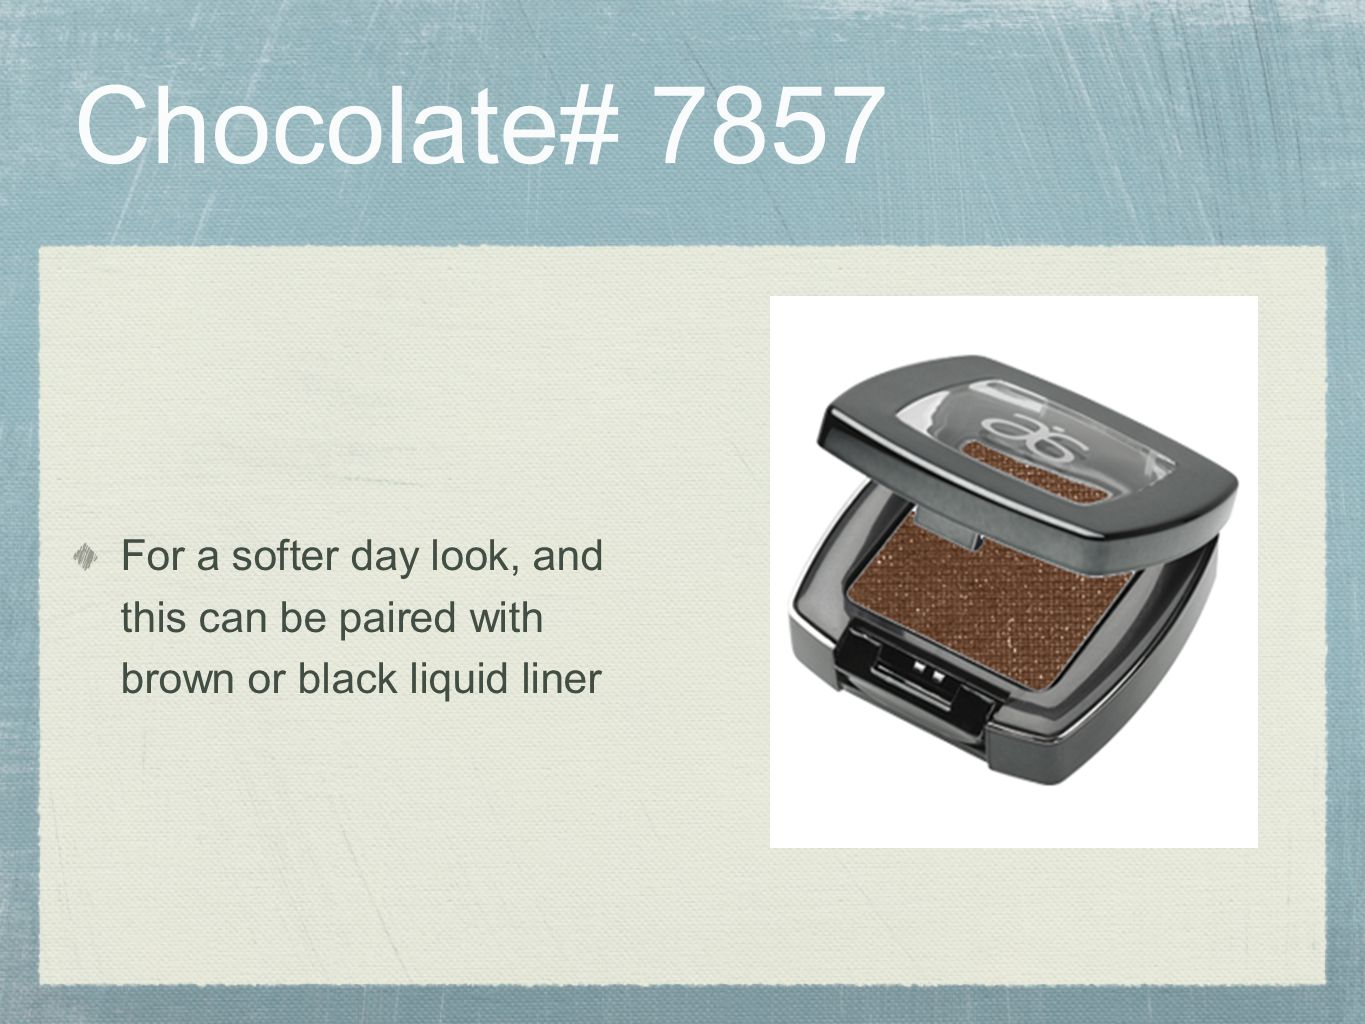 Chocolate# 7857 For a softer day look, and this can be paired with brown or black liquid liner